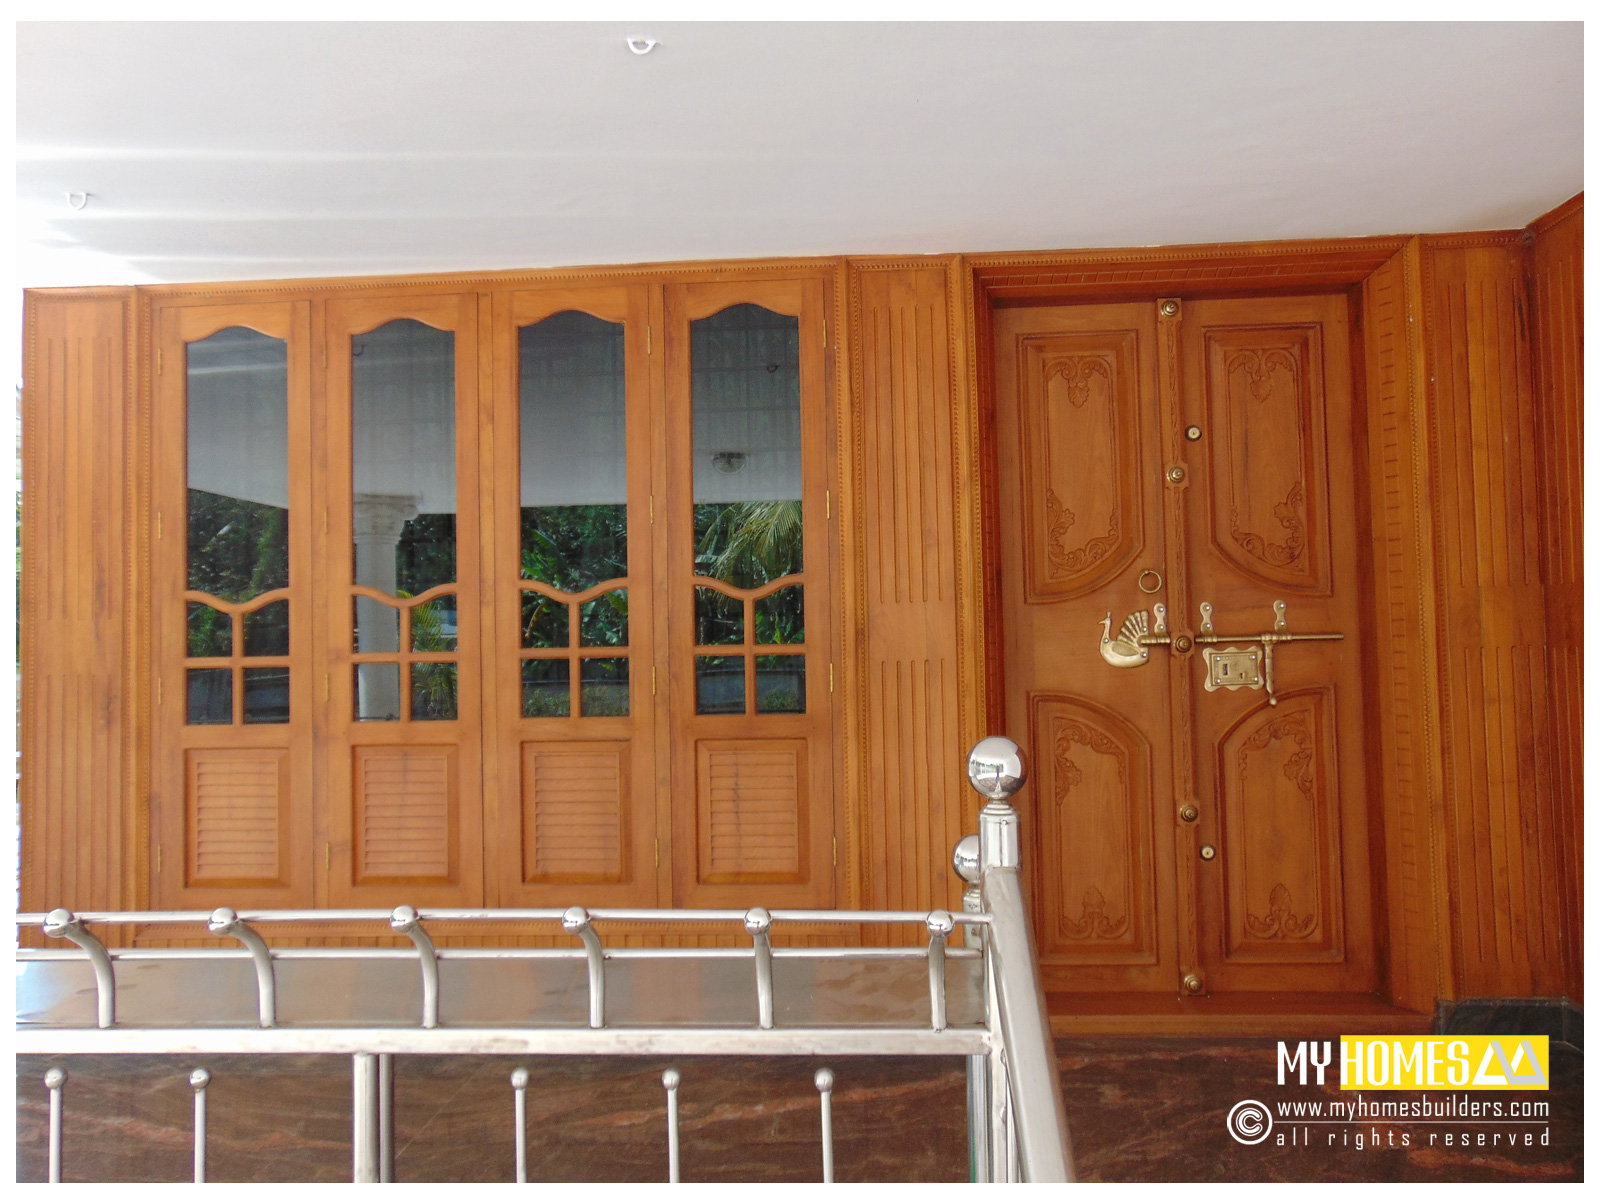 Main Doors Design door designs main door design photos to inspire you 2016 youtube Door Design Kerala Main Door Design Kerala Homes Door Deisign Kerala Homes Door Designs House Door